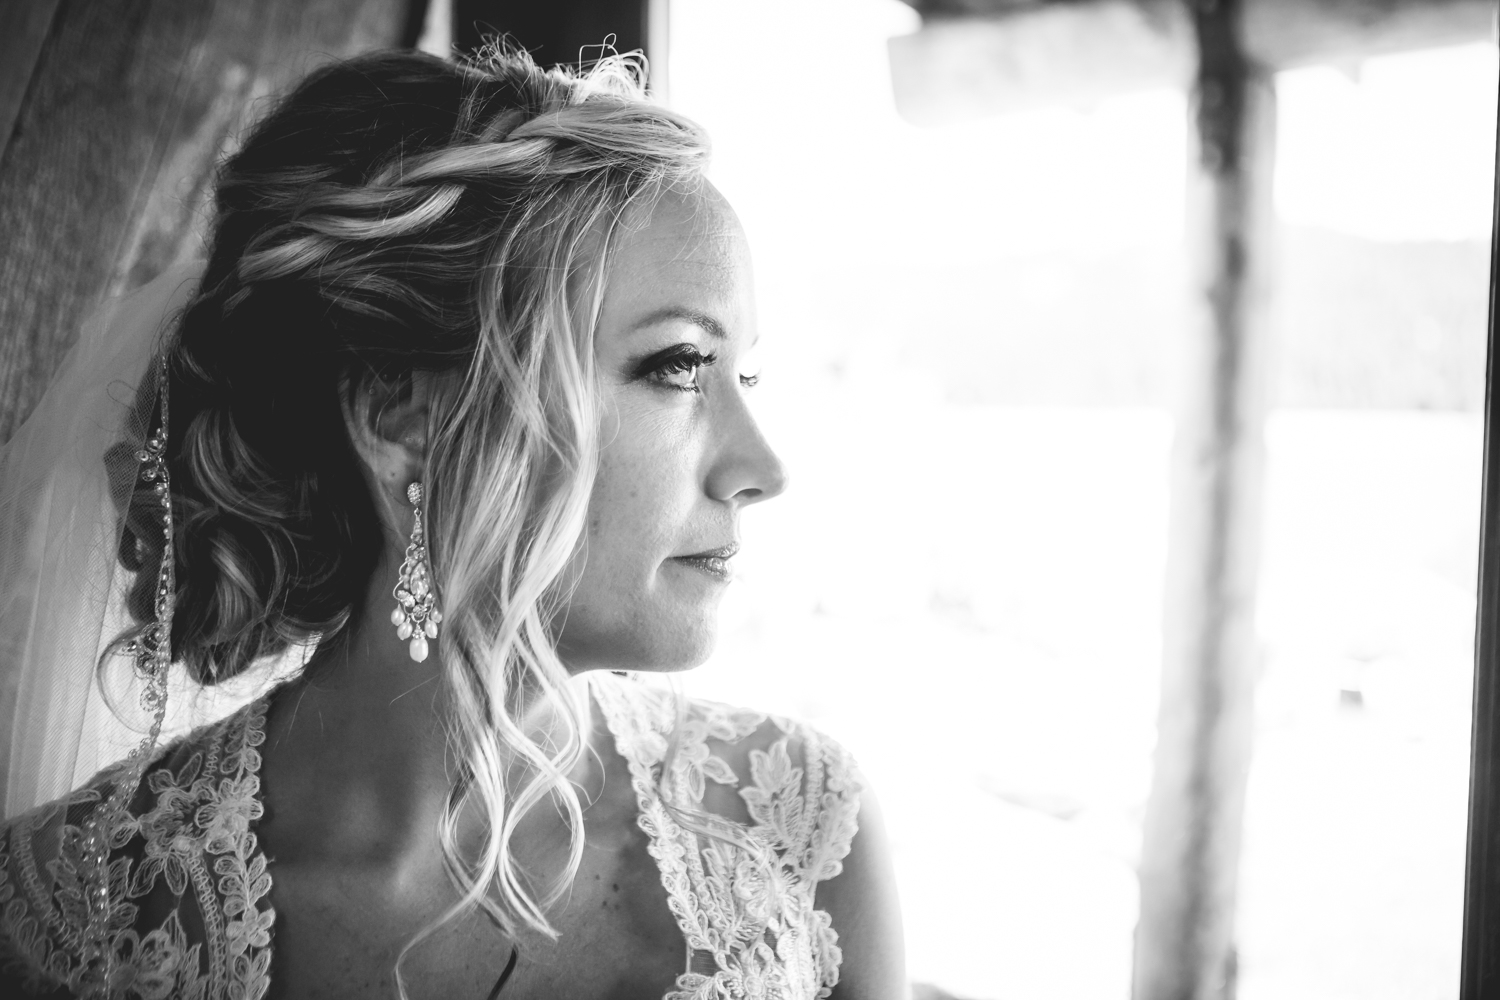 The bride waiting paciently for the ceremony to begin. The barn at Evergreen Memorial. Photographed by JMGant Photography.